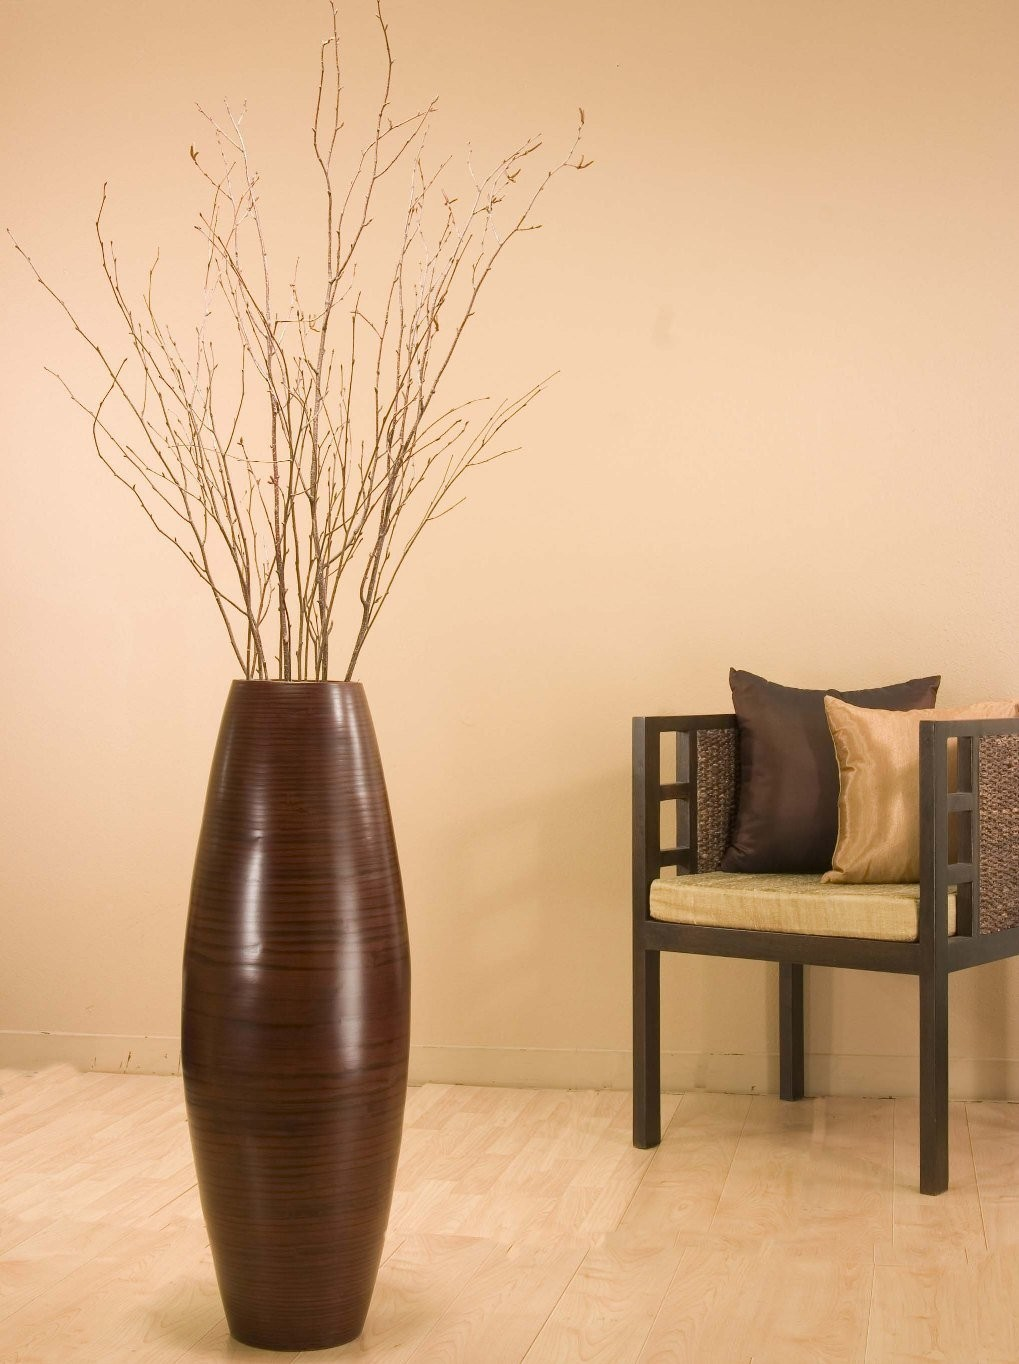 Extra Large Floor Vases | Floor Vases Tall Ceramic | Huge Floor Vases